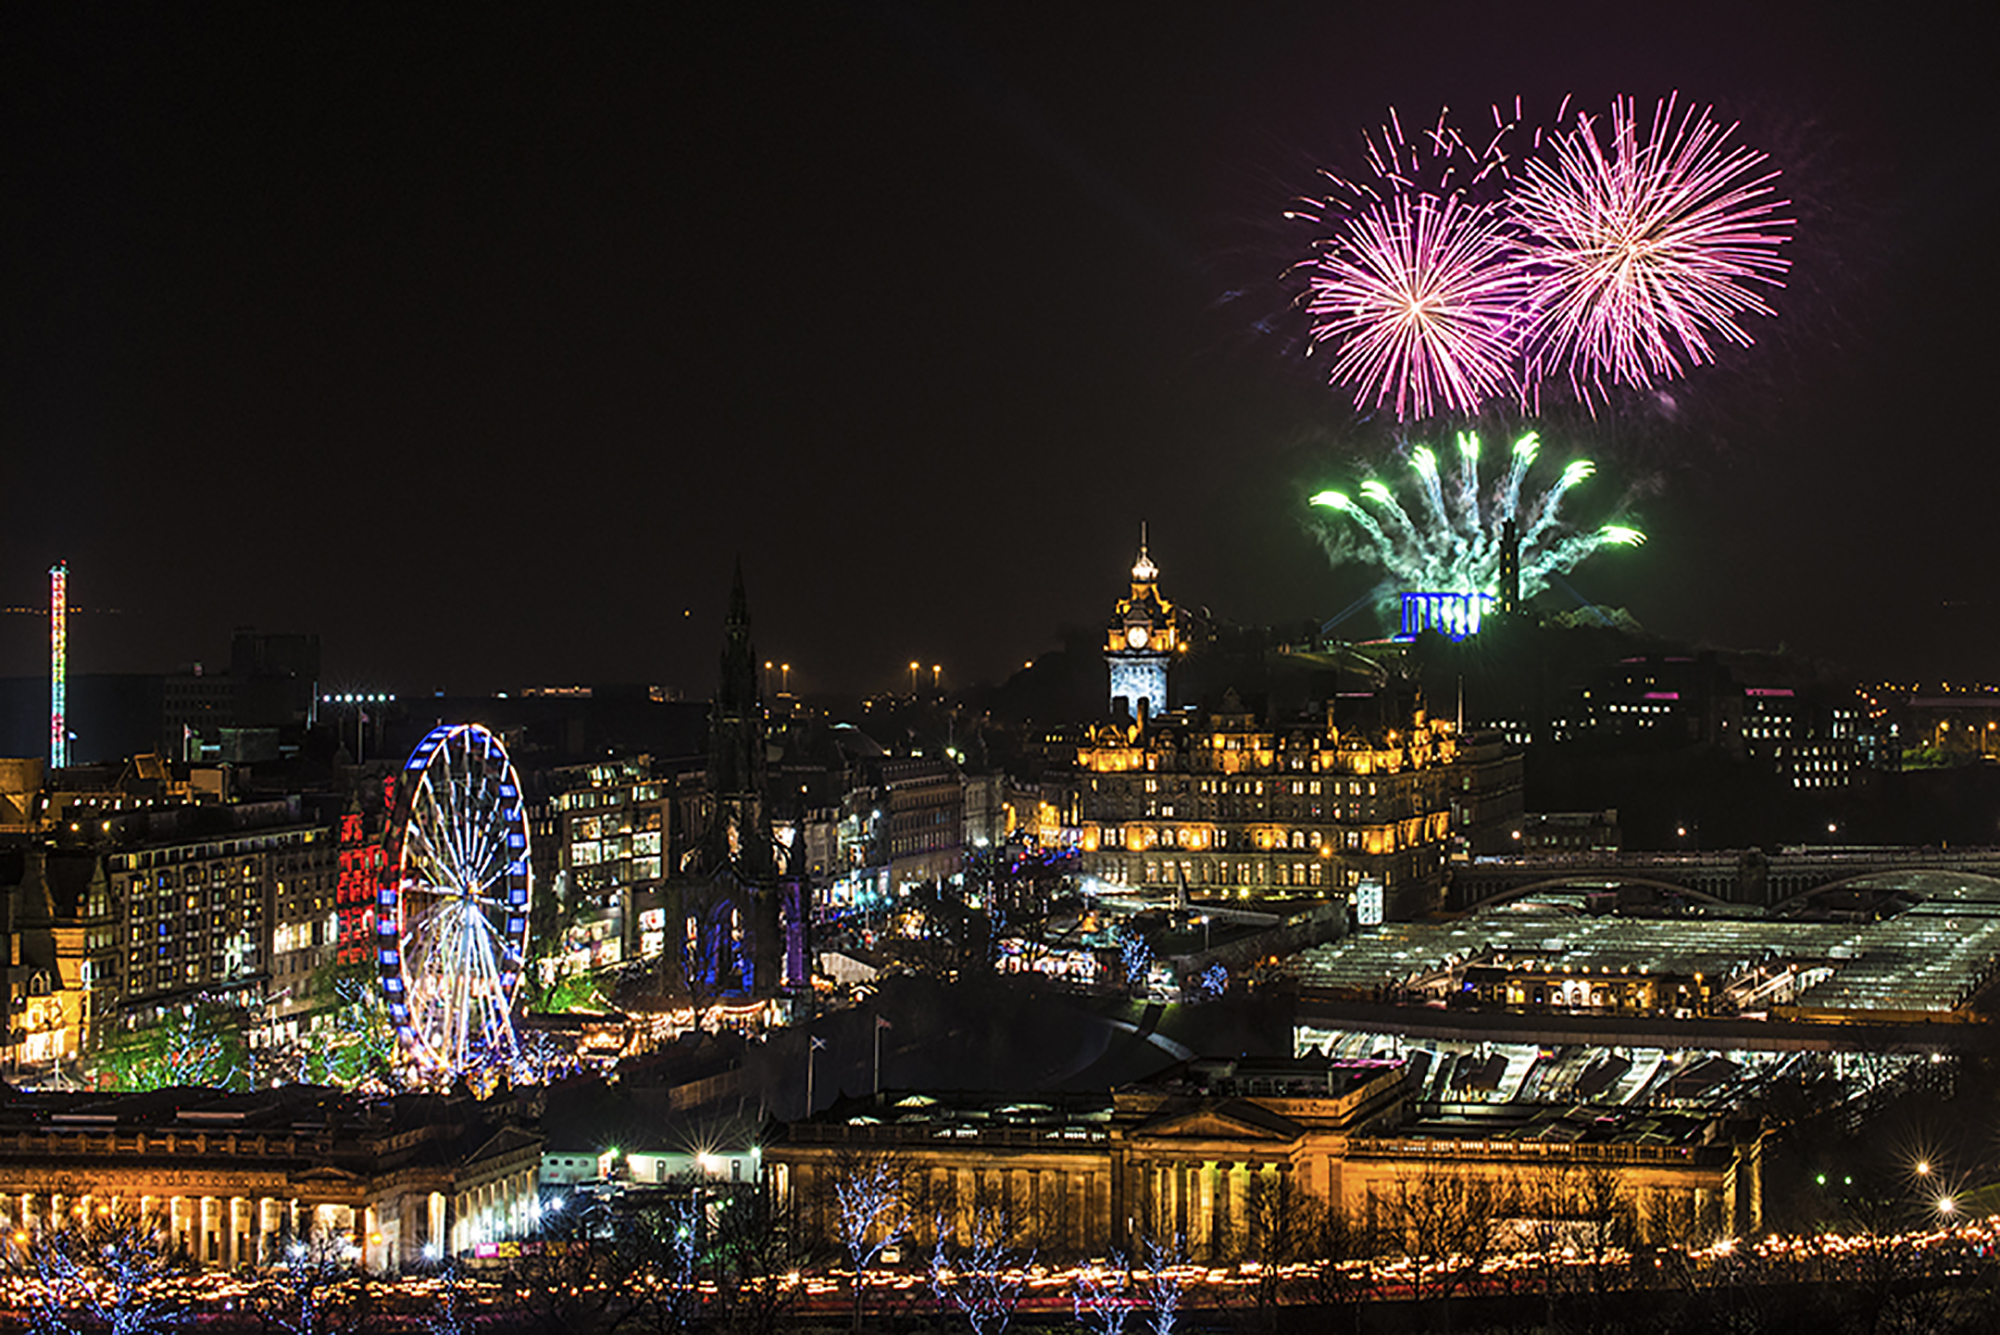 2014-homecoming-hogmanay-firework-thistles-at-edinburghs-hogmanay-torchlight-procession-c-grant-ritchie-real-edinburgh-2